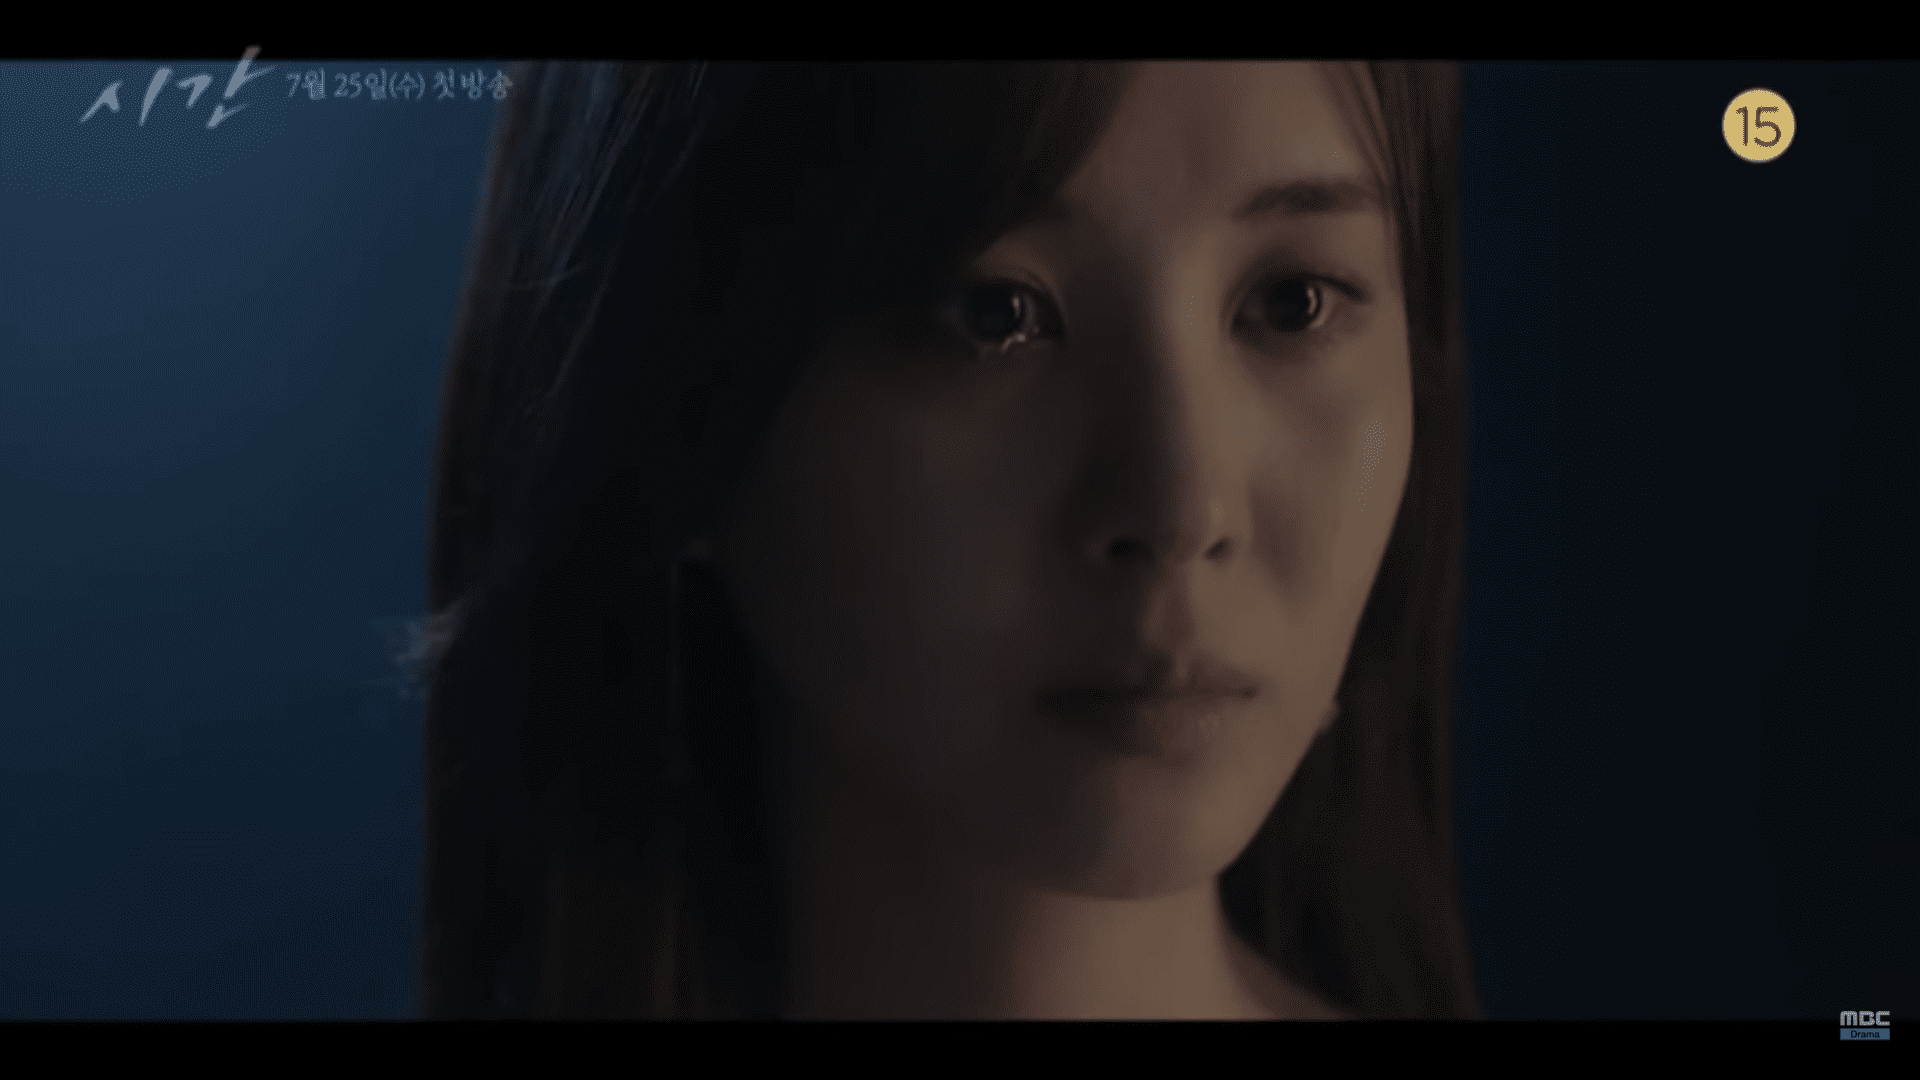 """WATCH: SNSD's Seohyun Is Sorrowful In Teaser For Upcoming Drama """"Time"""""""